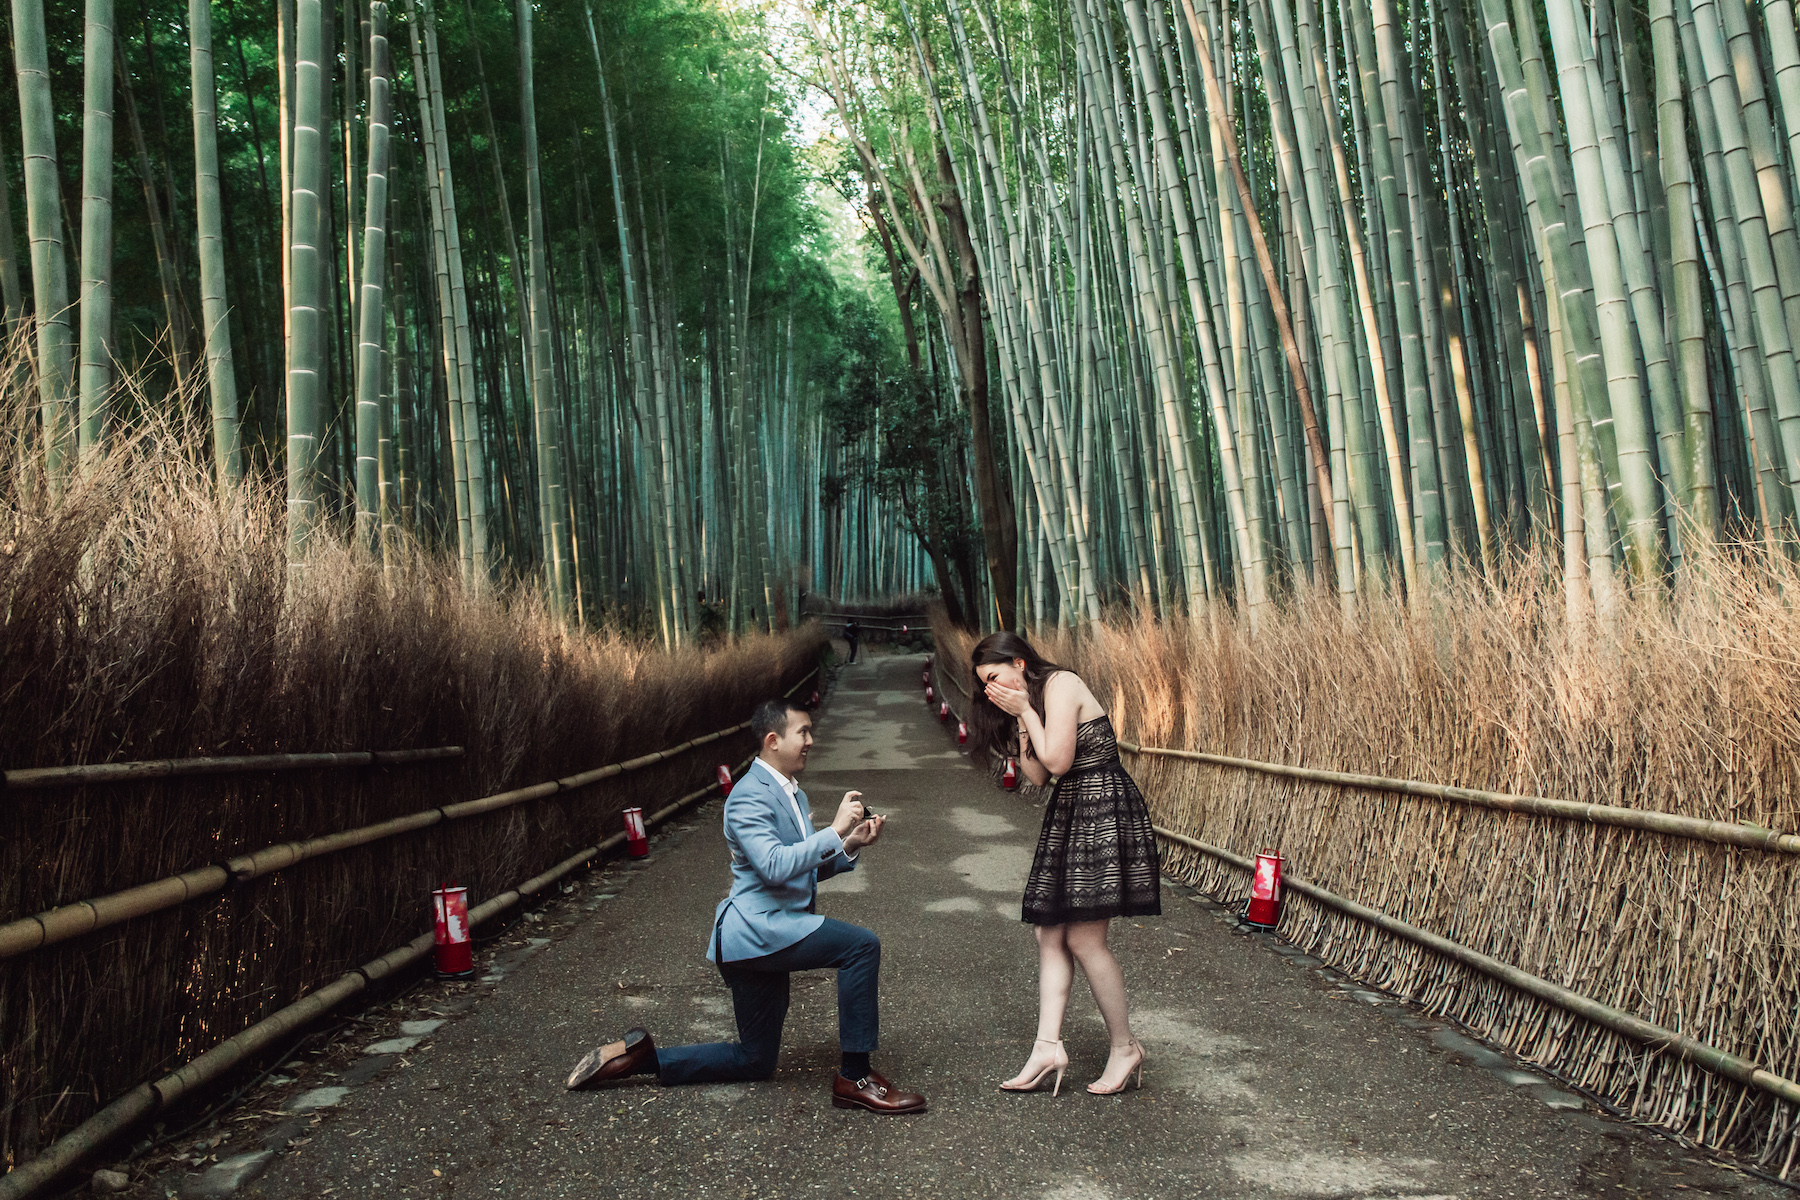 Couple in Kyoto and the man is proposing to the woman